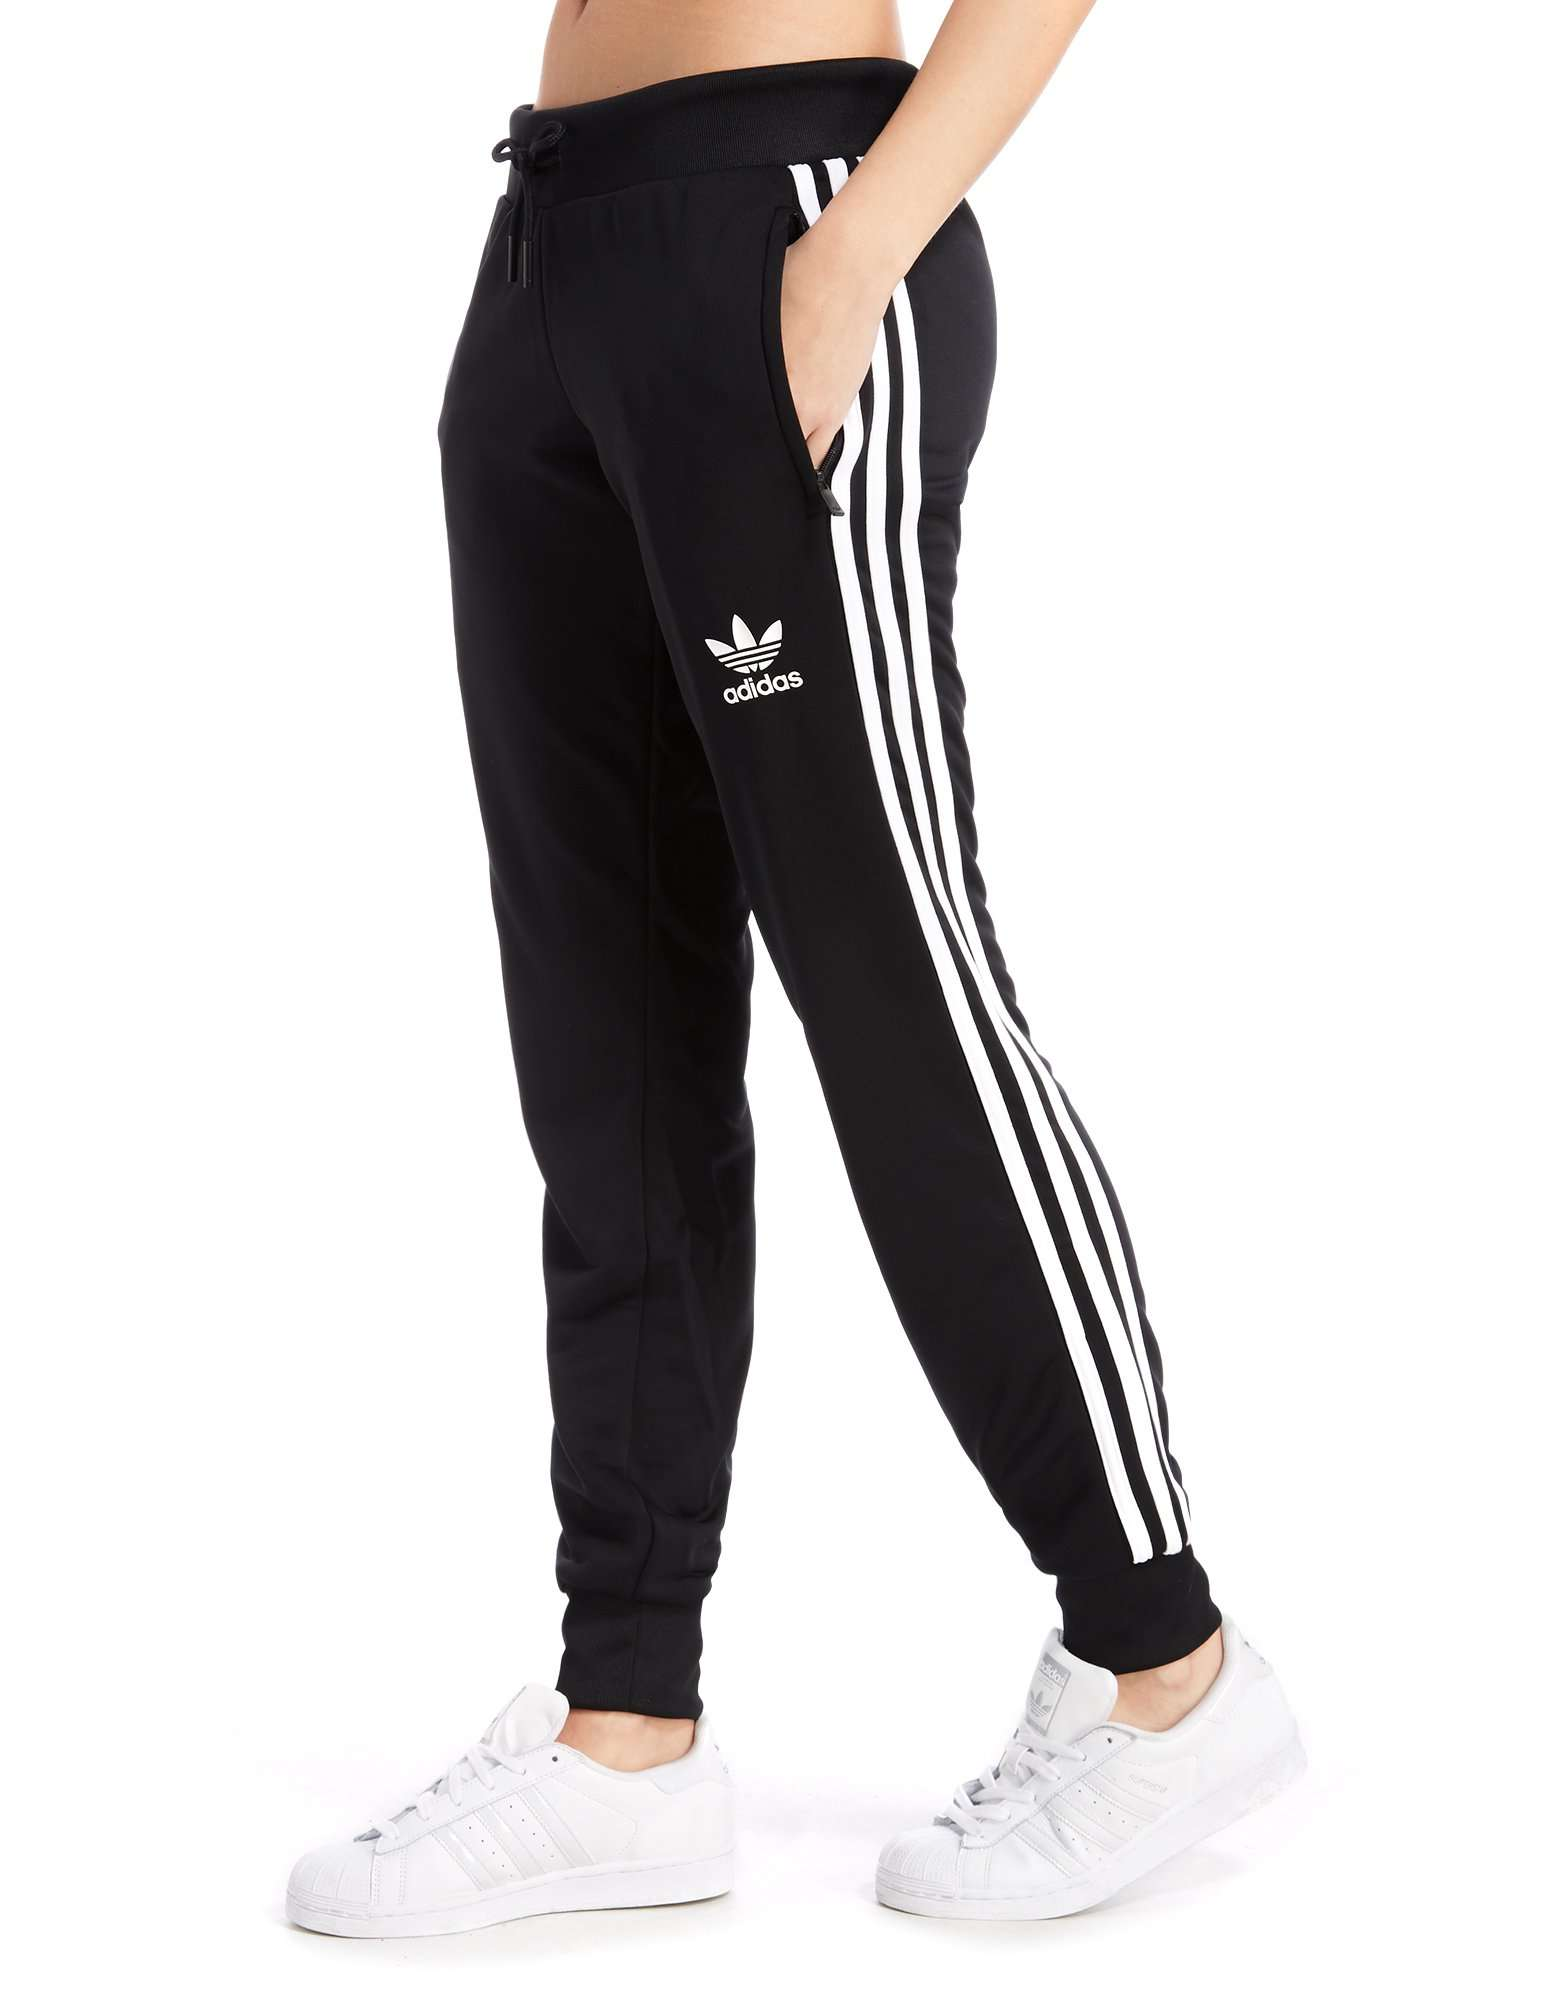 cc9e2536 adidas Originals Poly 3-Stripes Pants | JD Sports